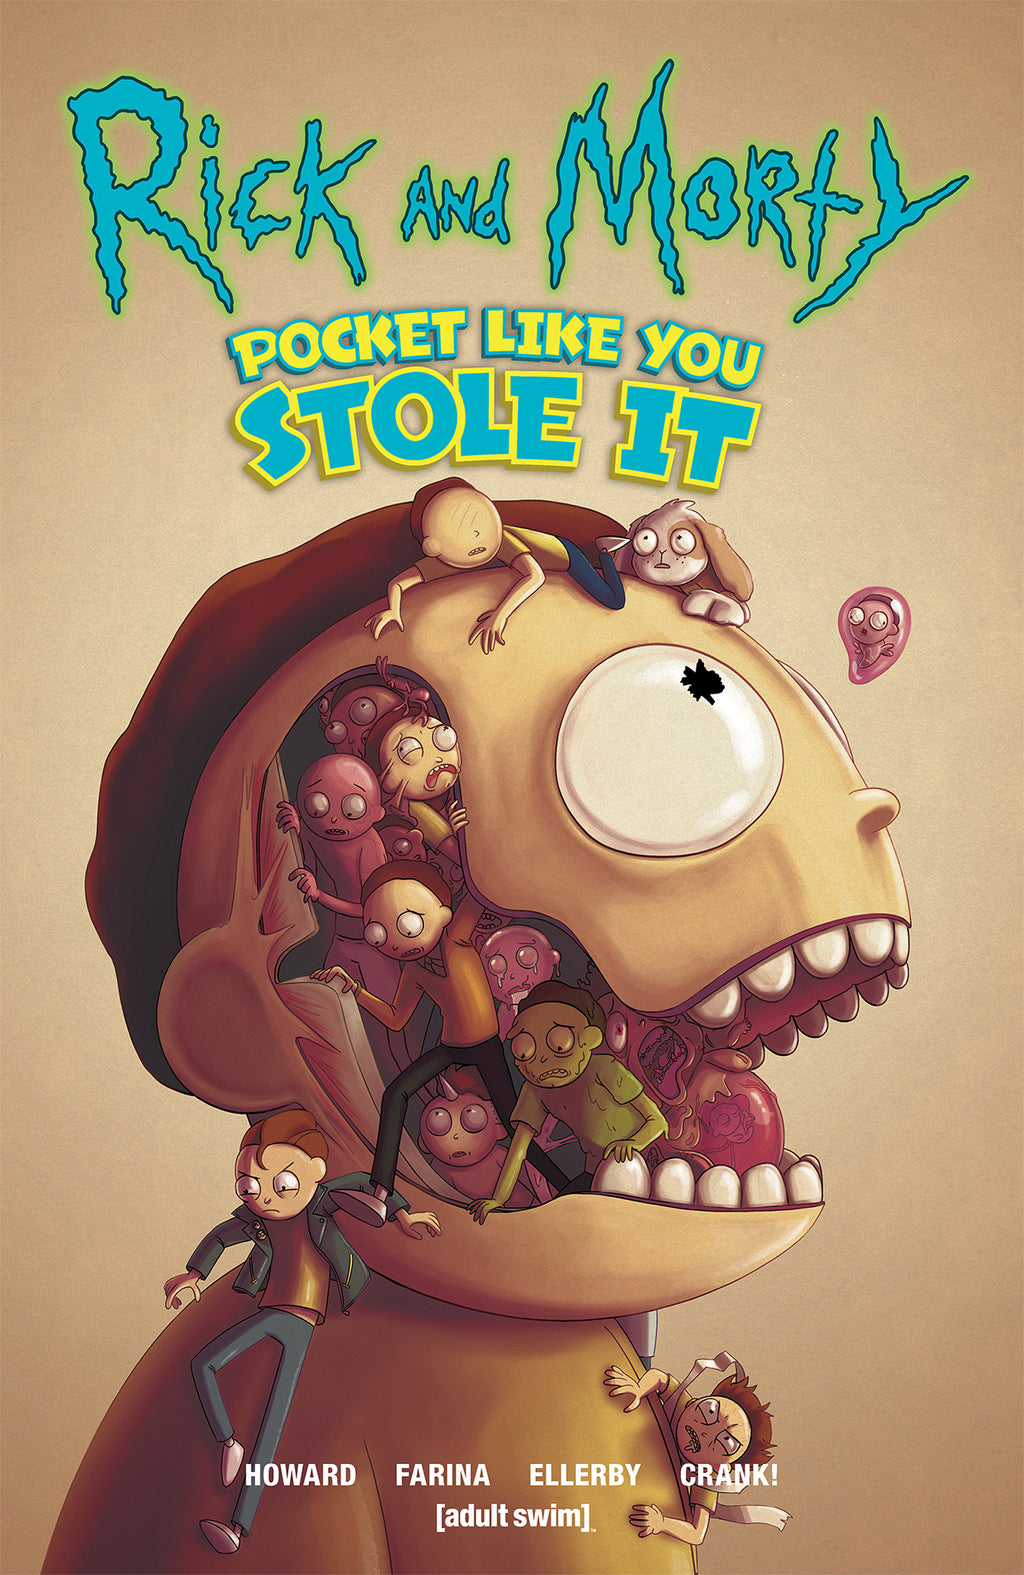 Rick and Morty: Pocket Like You Stole It Oni Exclusive